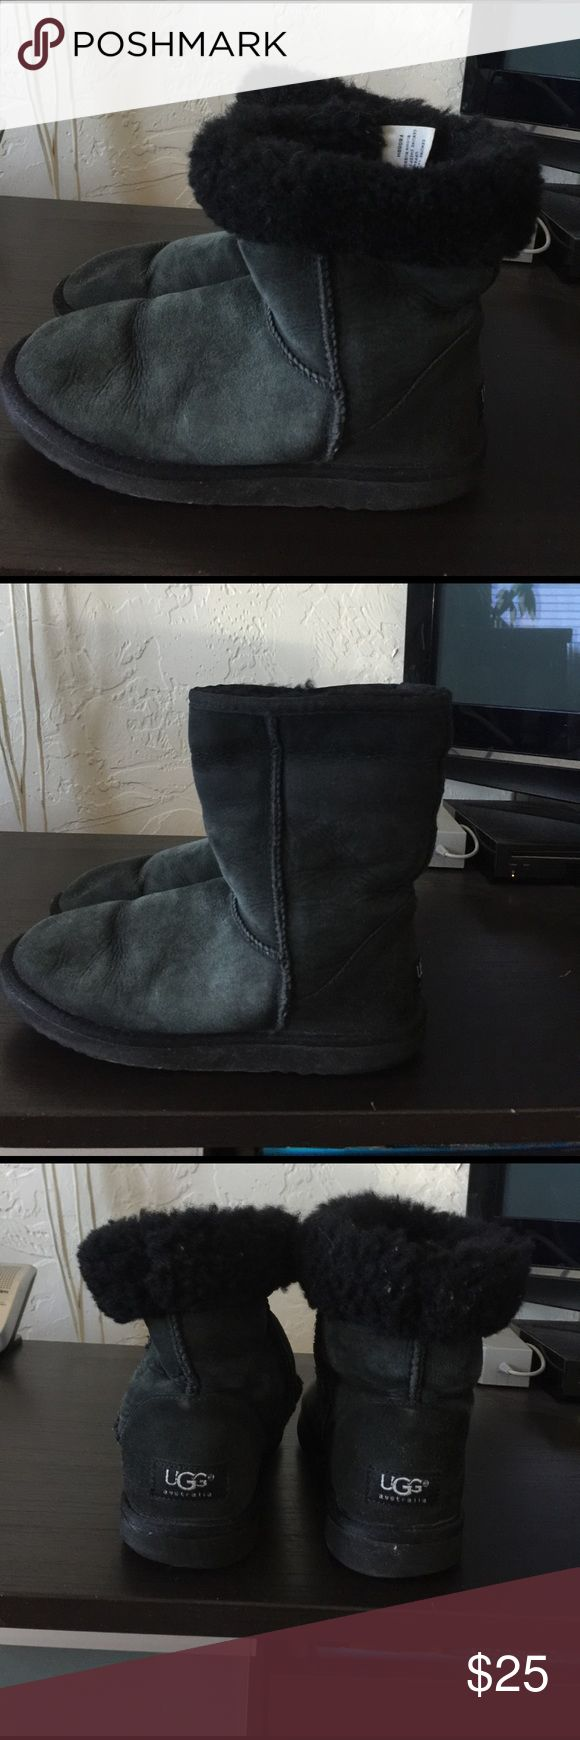 Navy Blue UGG Boots Great condition navy blue UGG Boots UGG Shoes Winter & Rain Boots